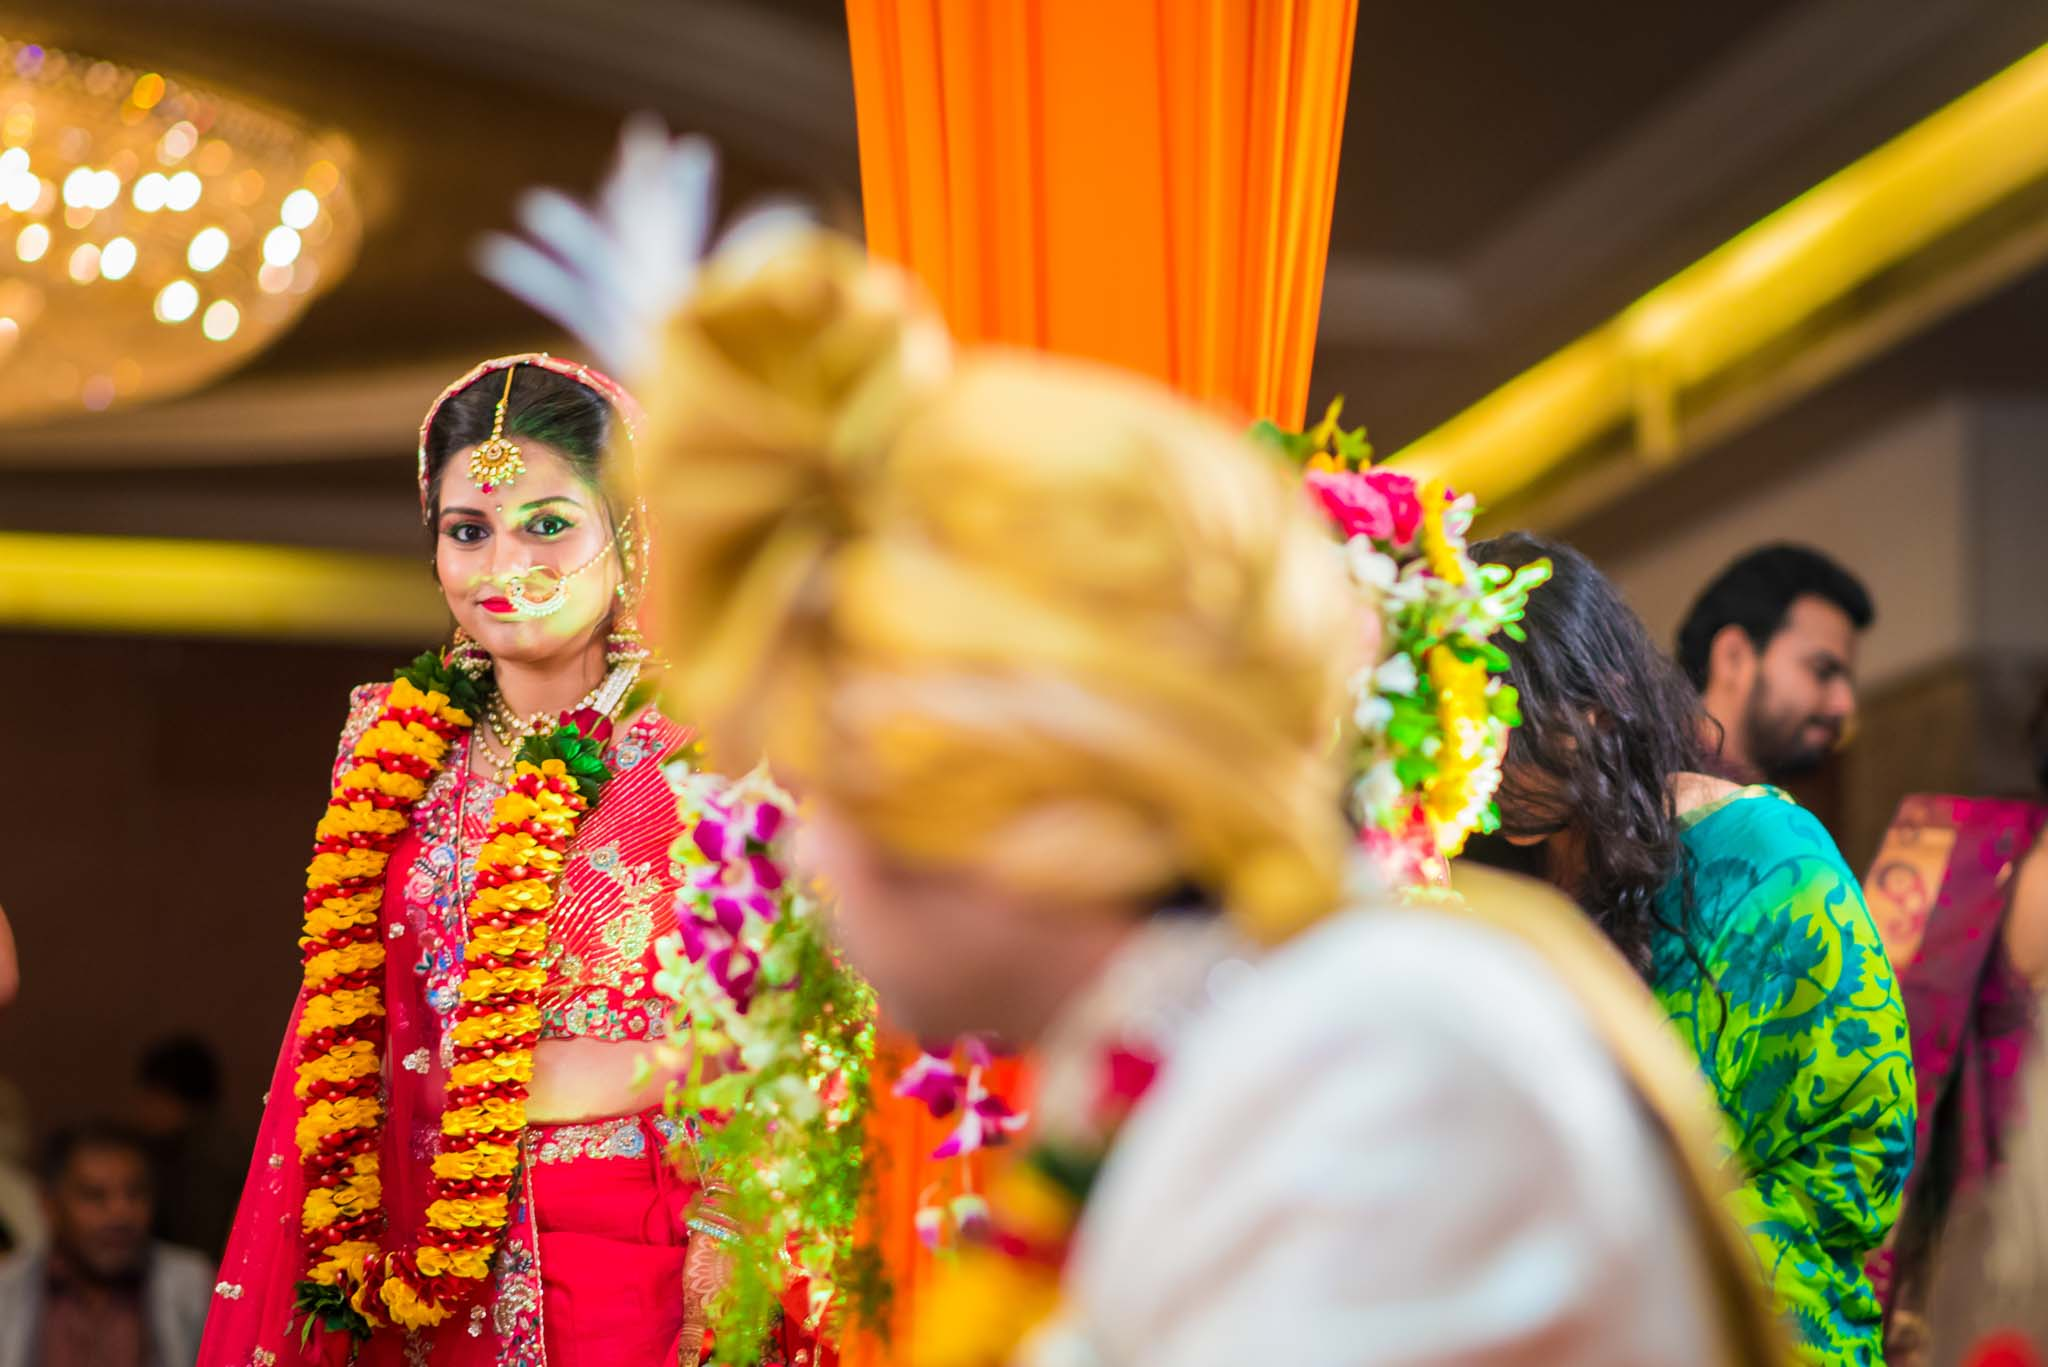 Candid-Wedding-Photography-Nagpur-Destination-73